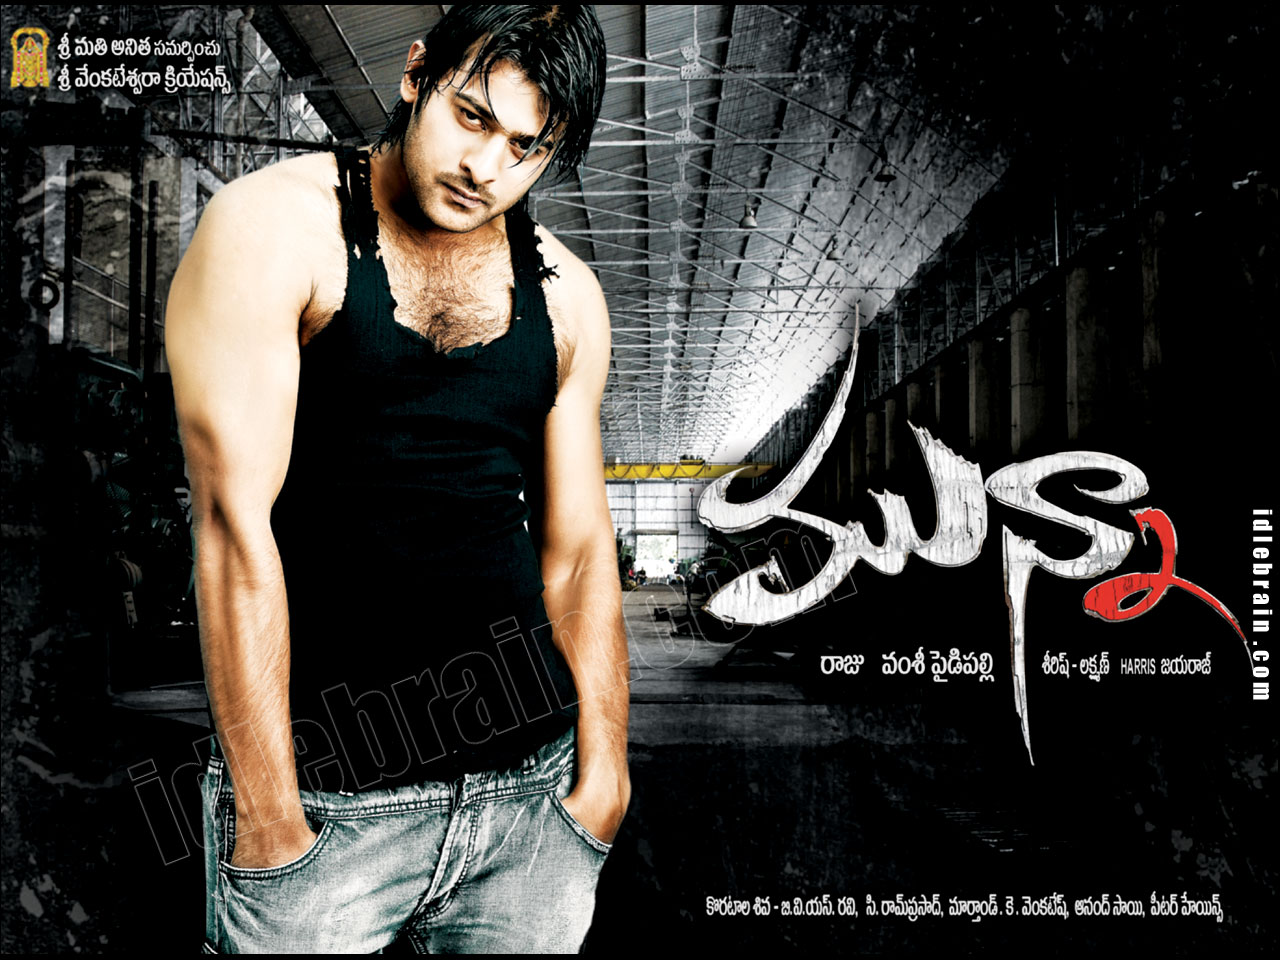 Prabhas Rebel New Stills Wallpapers Ultra Hd 2000: Prabhas Official Website-: Munna